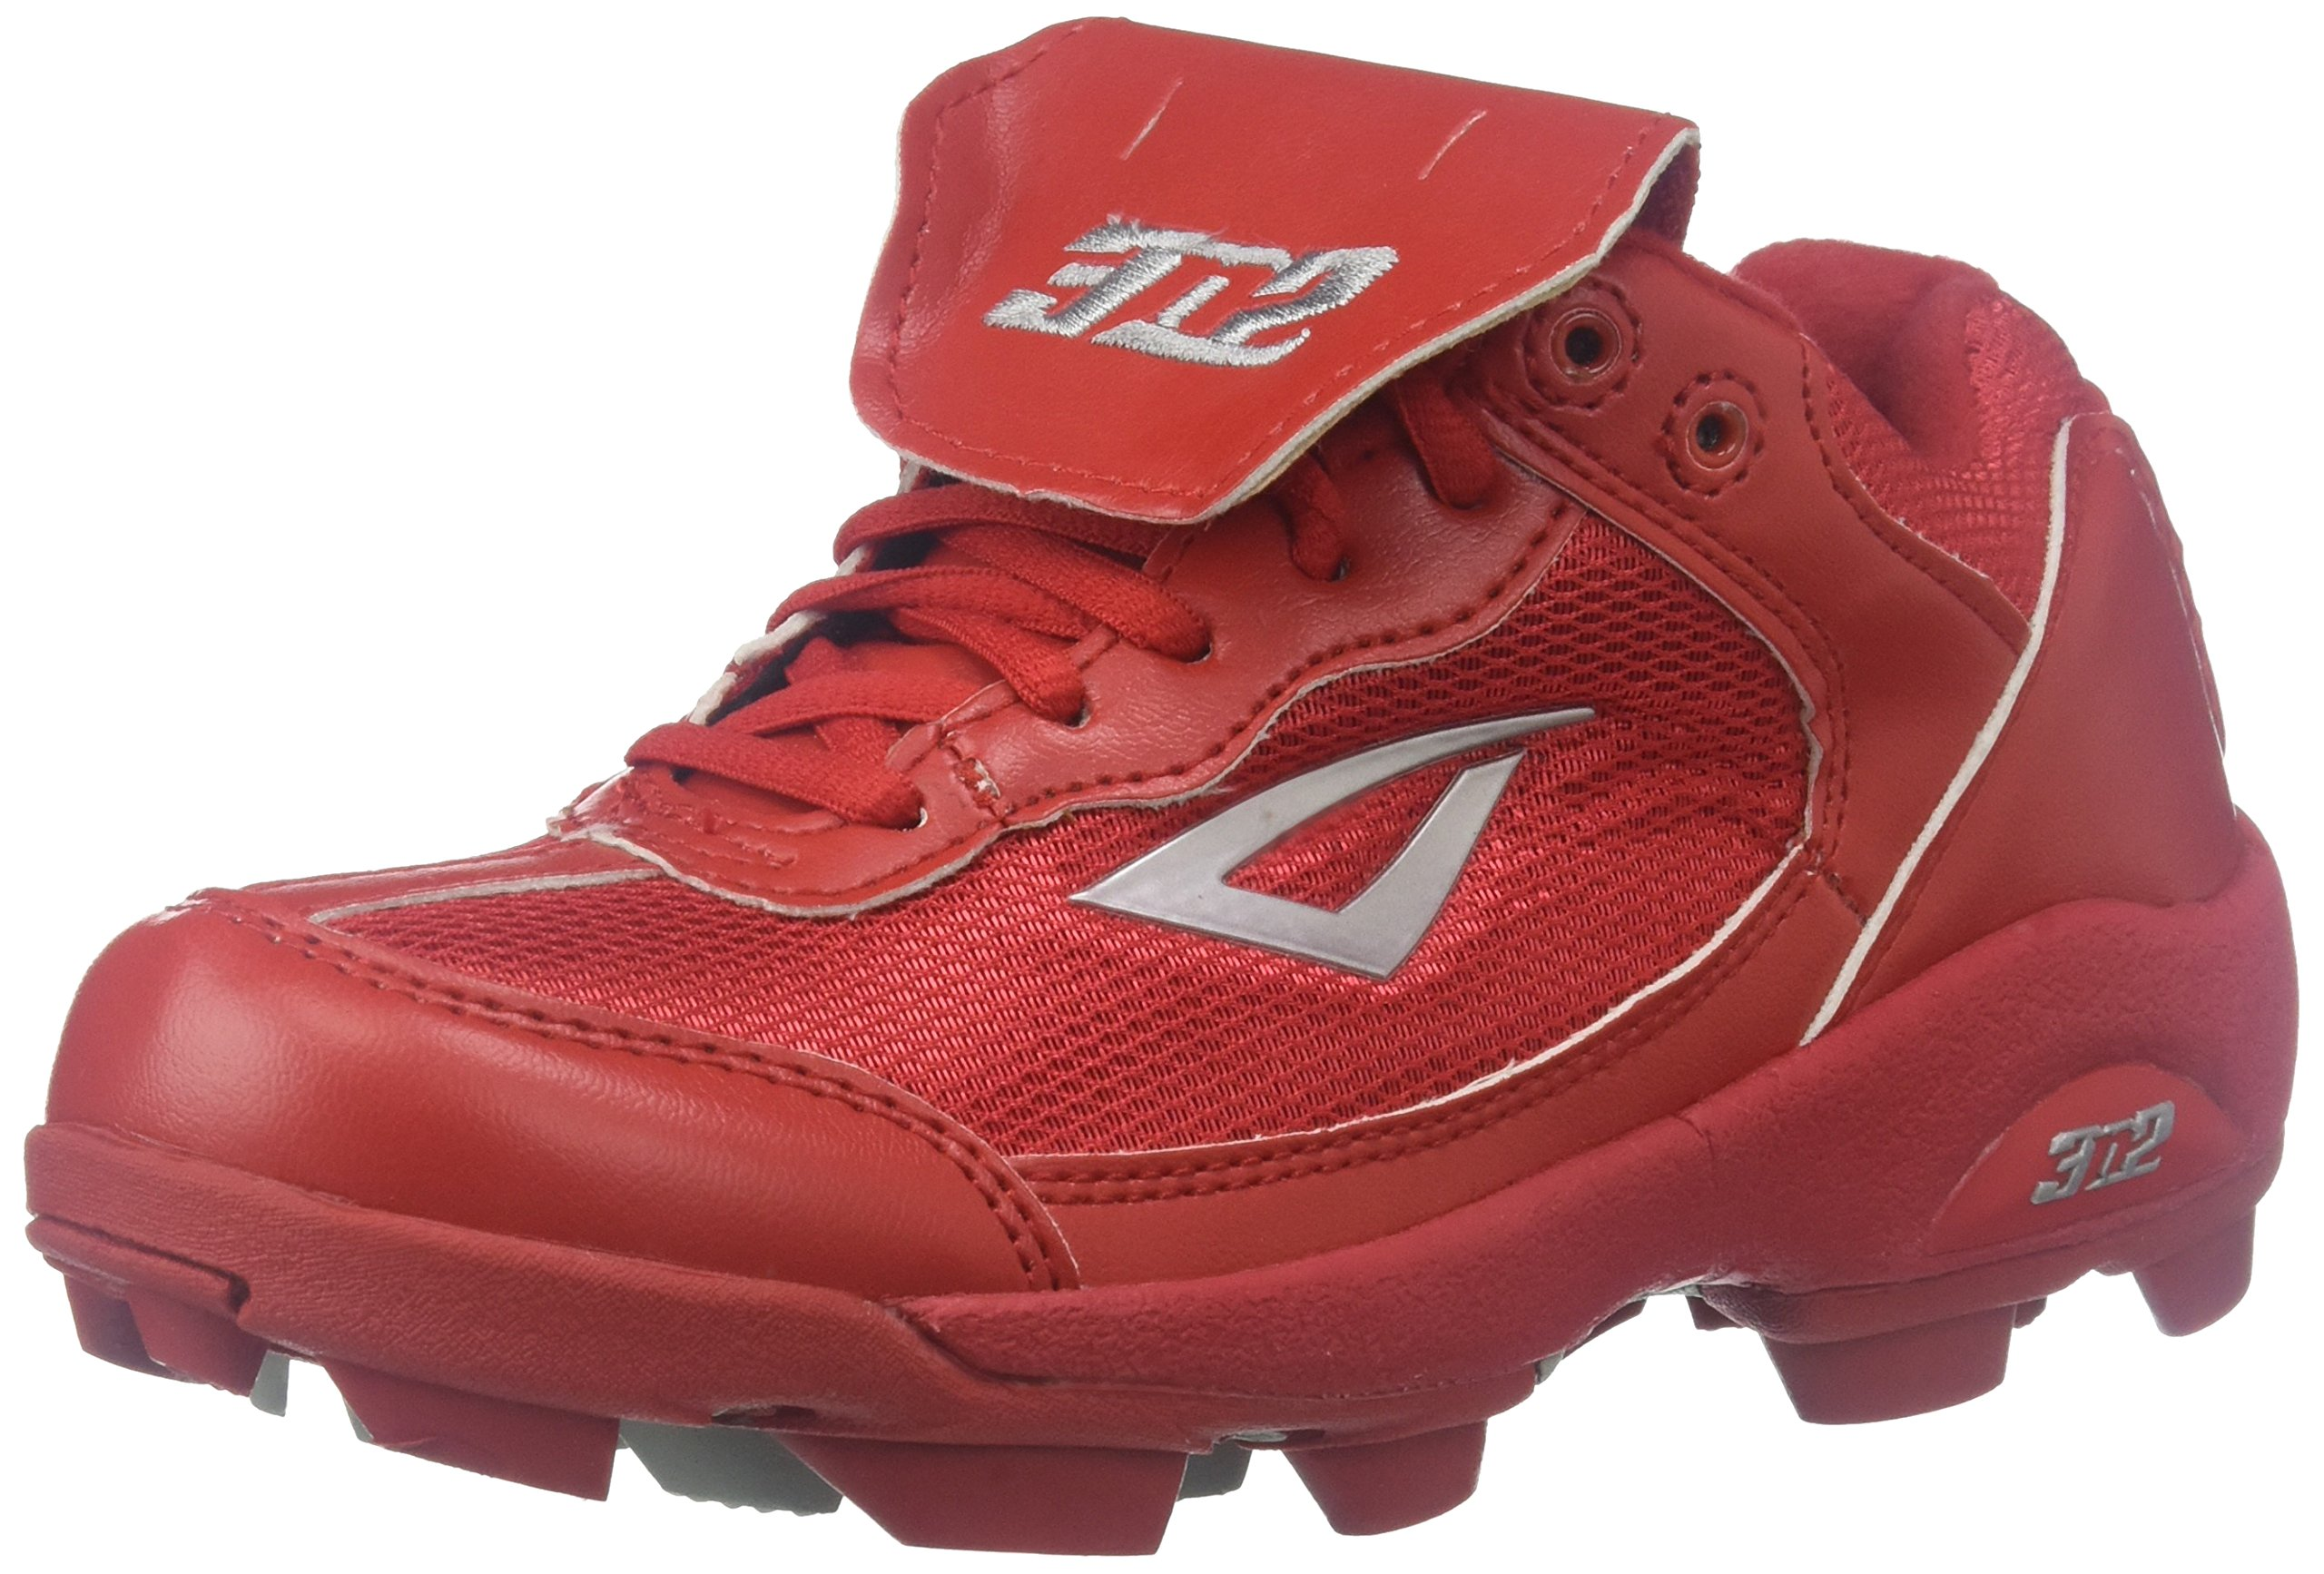 3N2 Youth Rookie Shoes, Red/Silver, Size 2.5 by 3N2